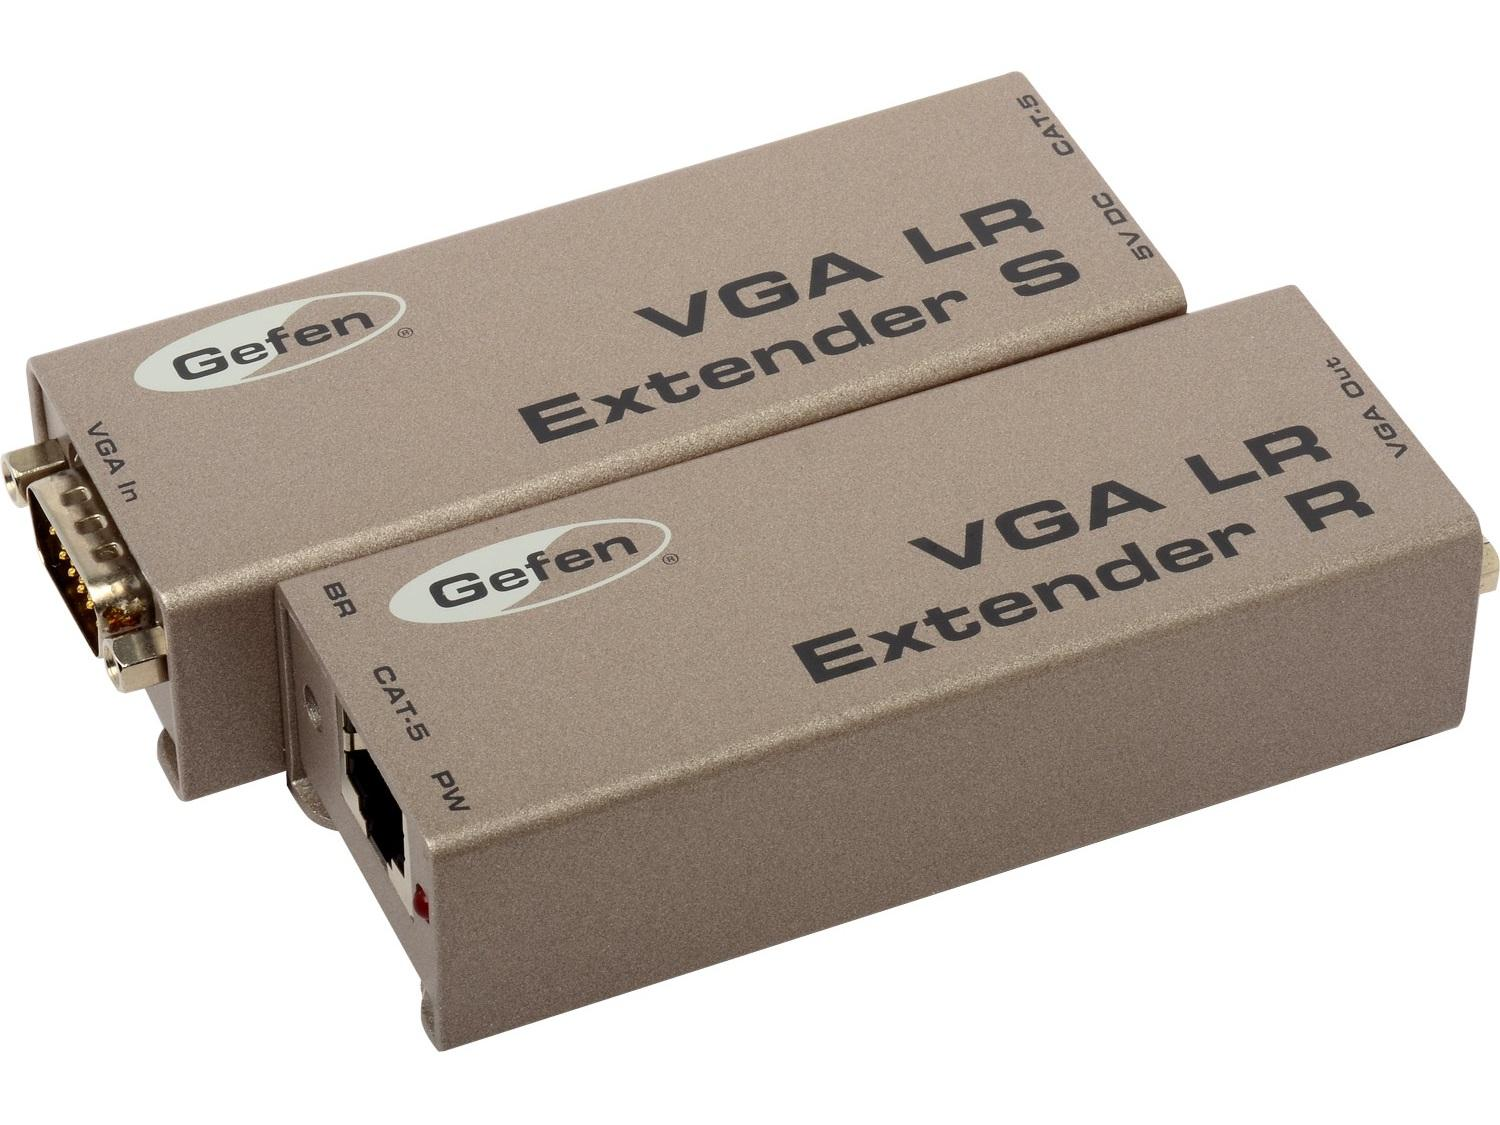 EXT-VGA-141LR VGA/Component Video Extender(Receiver/Sender) Kit  Up to 330ft by Gefen